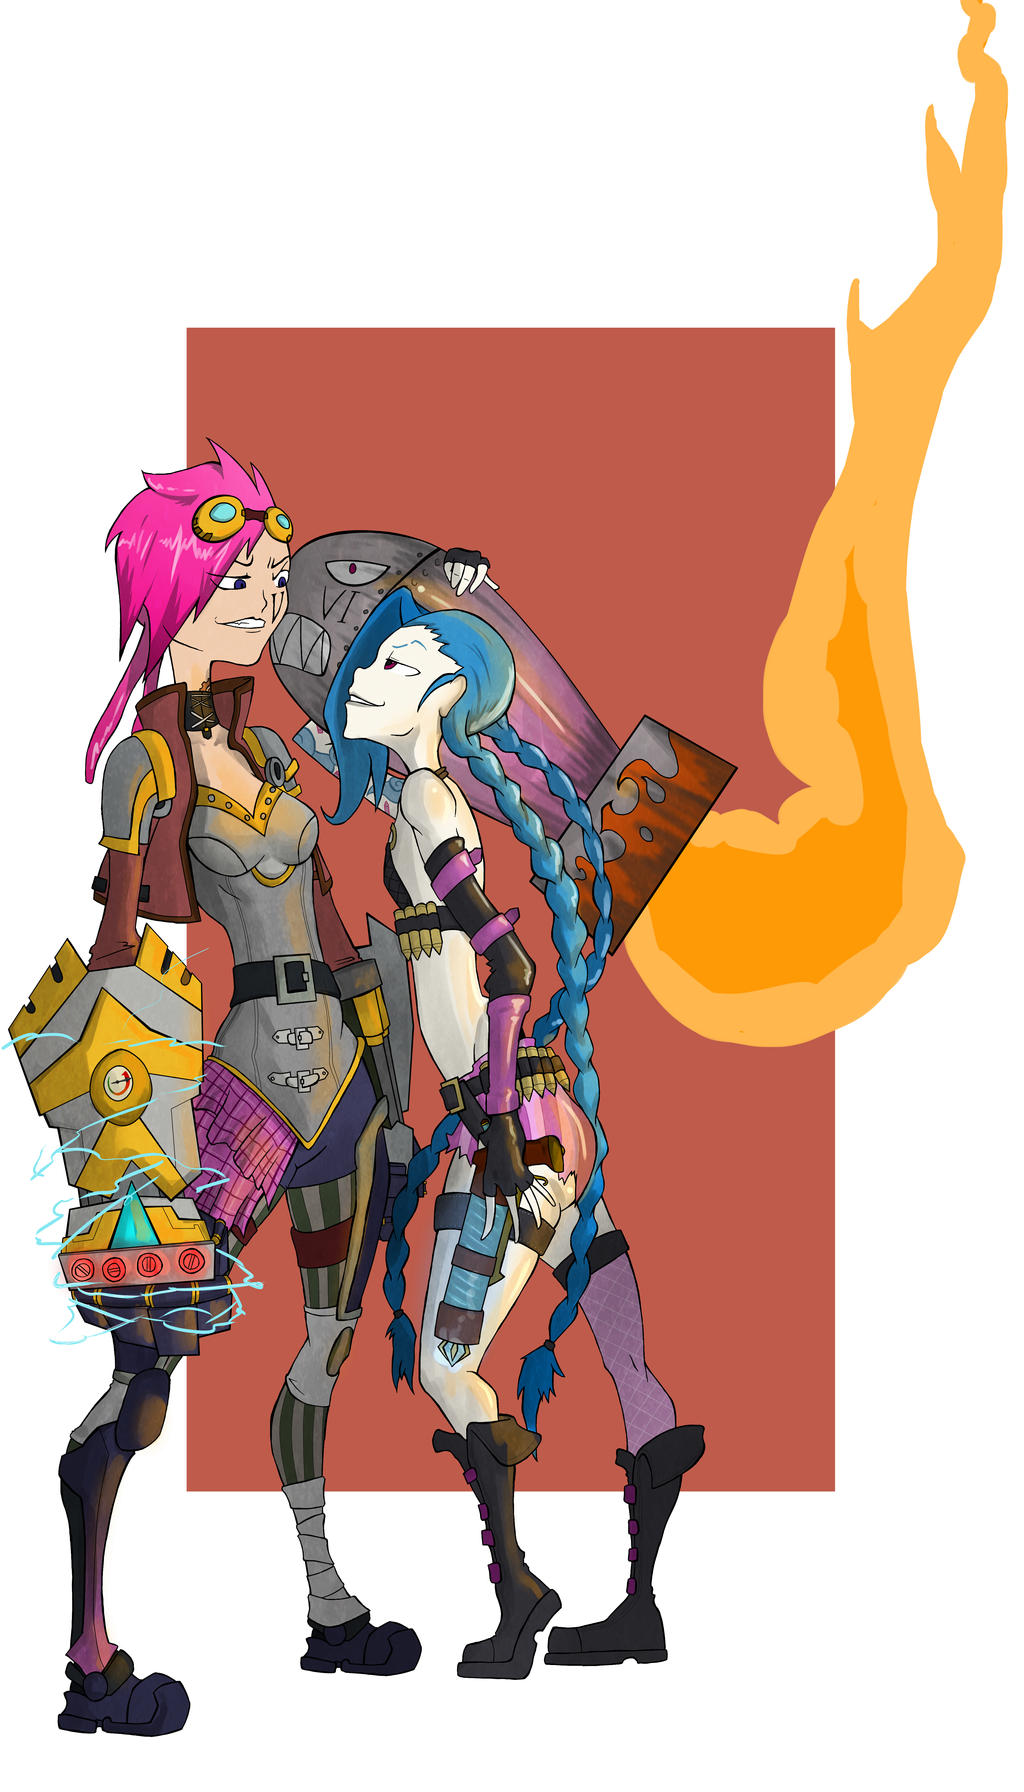 Vi Vs Jinx Color by juanrock